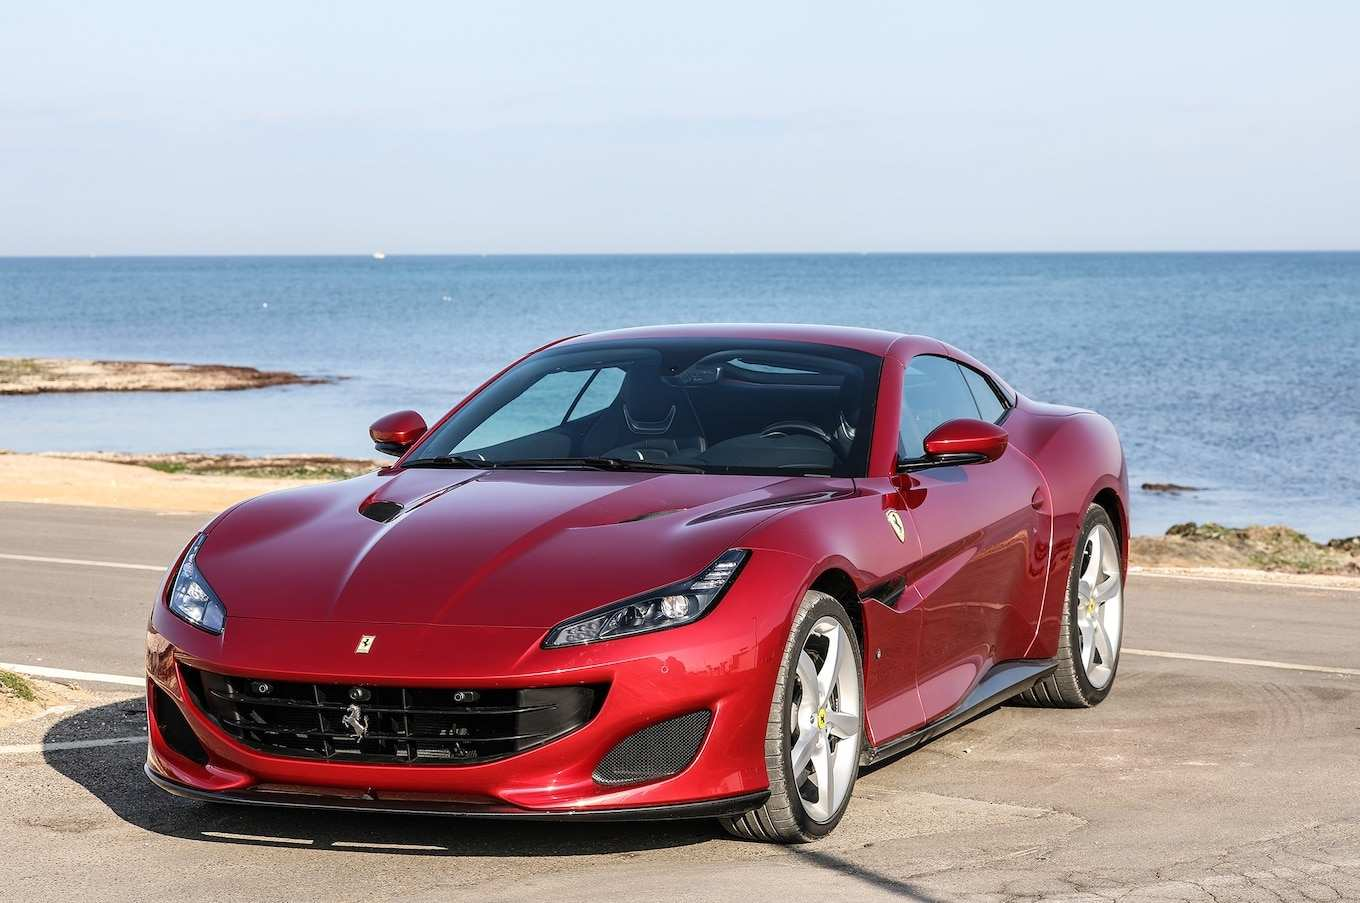 32 All New 2019 Ferrari Portofino First Drive for 2019 Ferrari Portofino